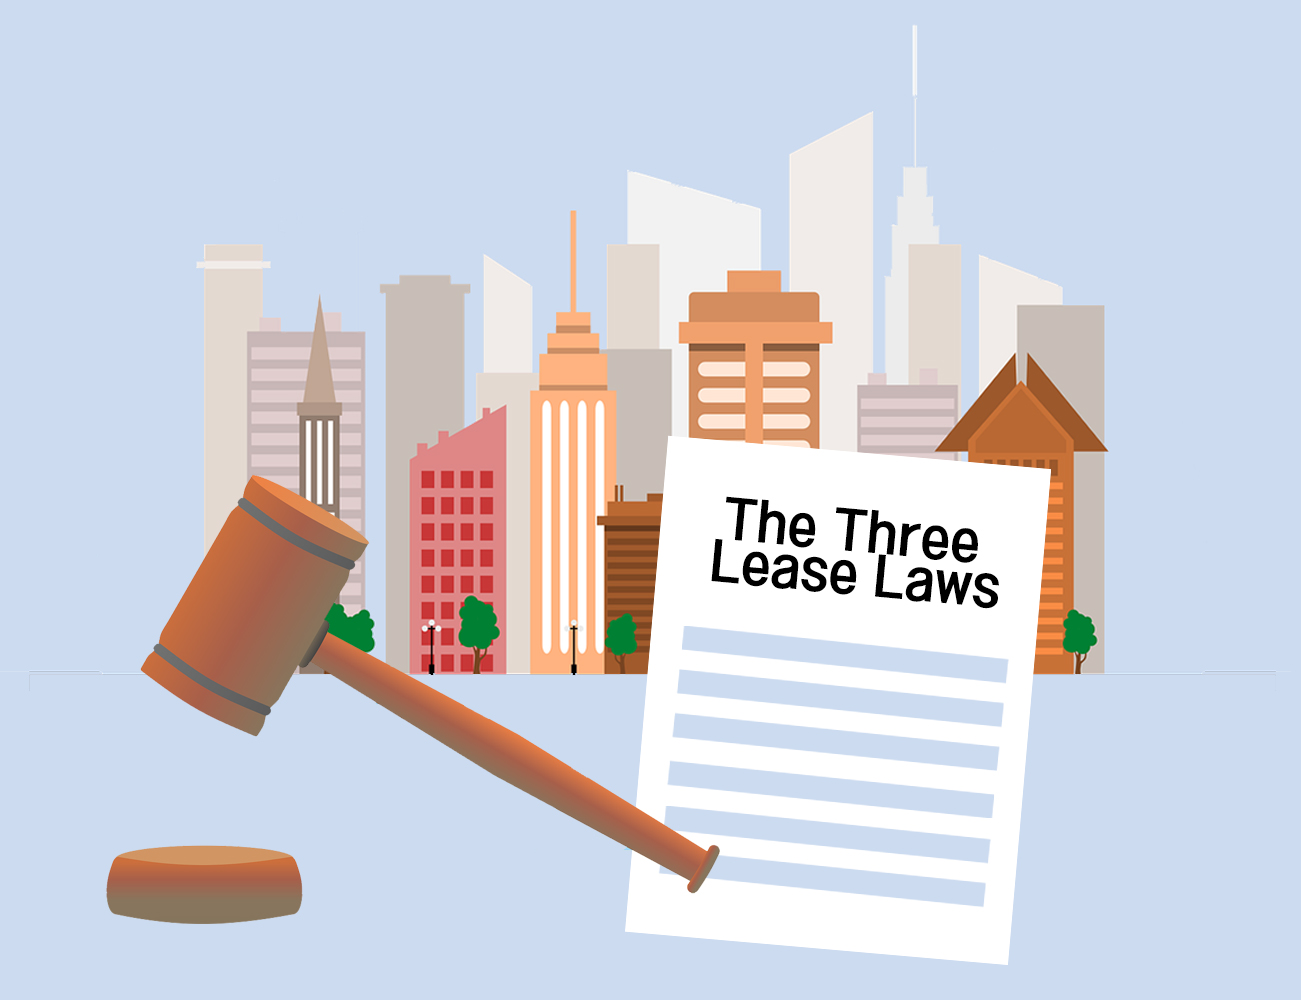 The Three Lease Laws: A Possible Solution for Real Estate Problems